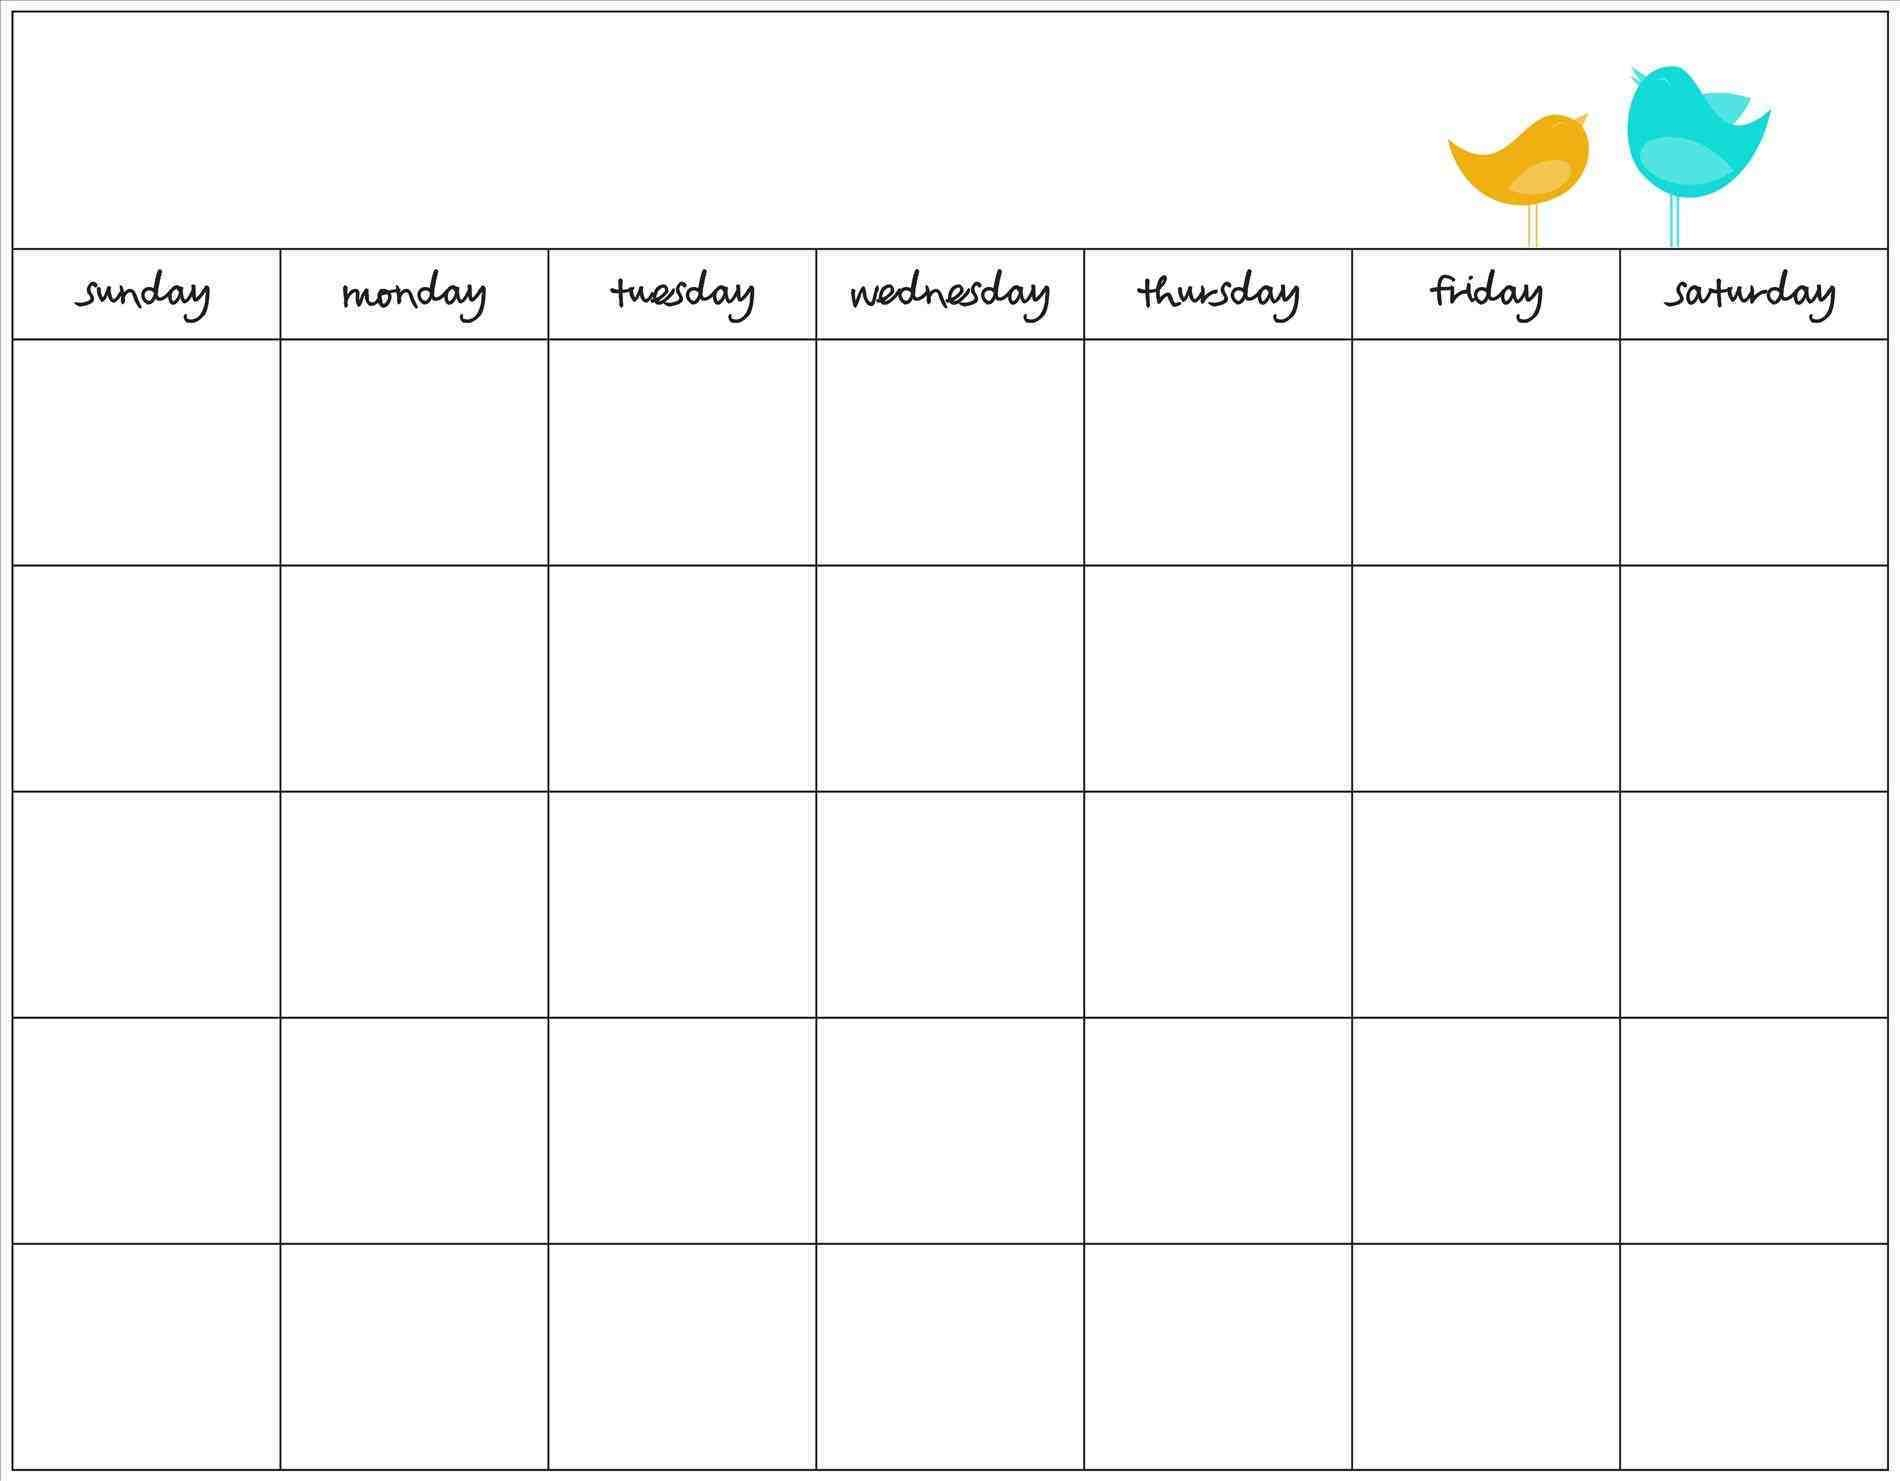 Download the printable 2020 blank monthly calendar template with enough space for the rows as microsoft word document. Cute Printable Blank Calendar Template | Calendar Template ...